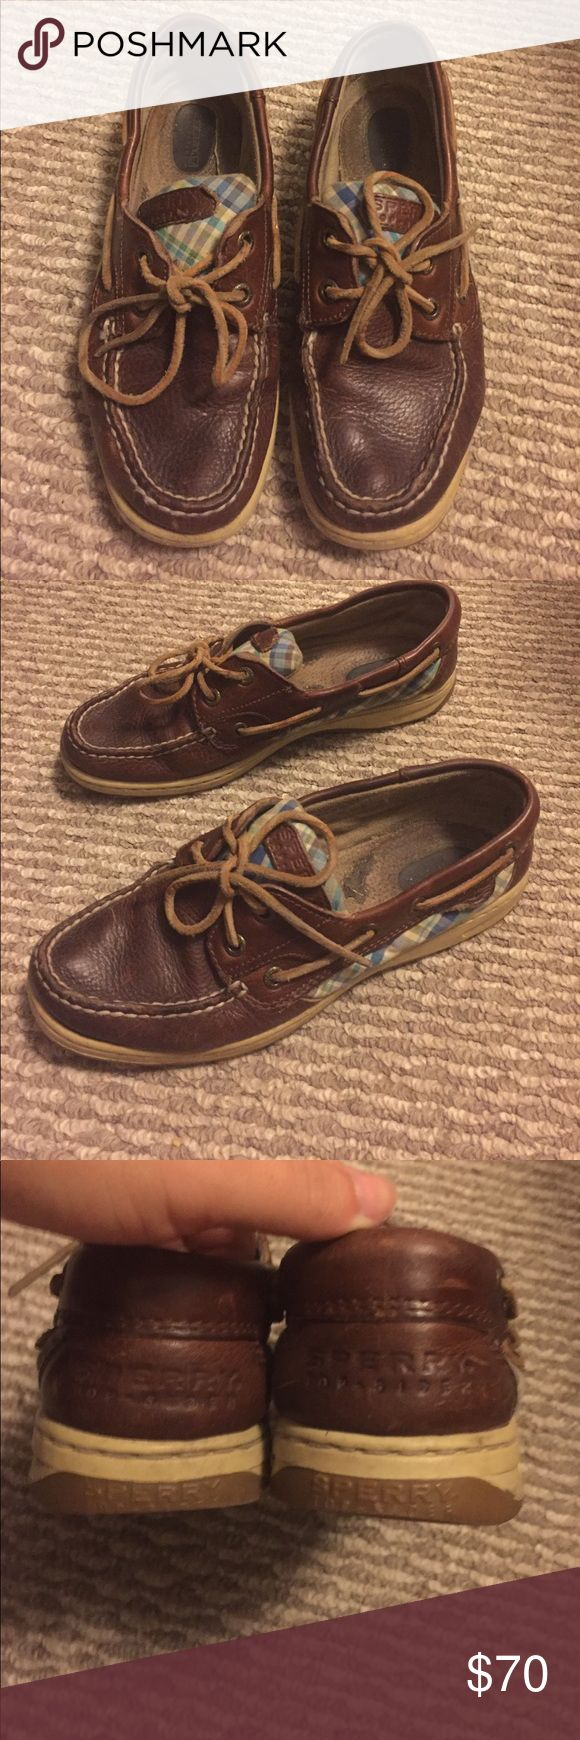 2 items for $12! SALE! Blue plaid sperry boat shoe Sperry topsider boat shoes in dark brown with blue plaid accents. Decent used condition with lots of life left. Some normal wear & tear as shown. Sperry Shoes